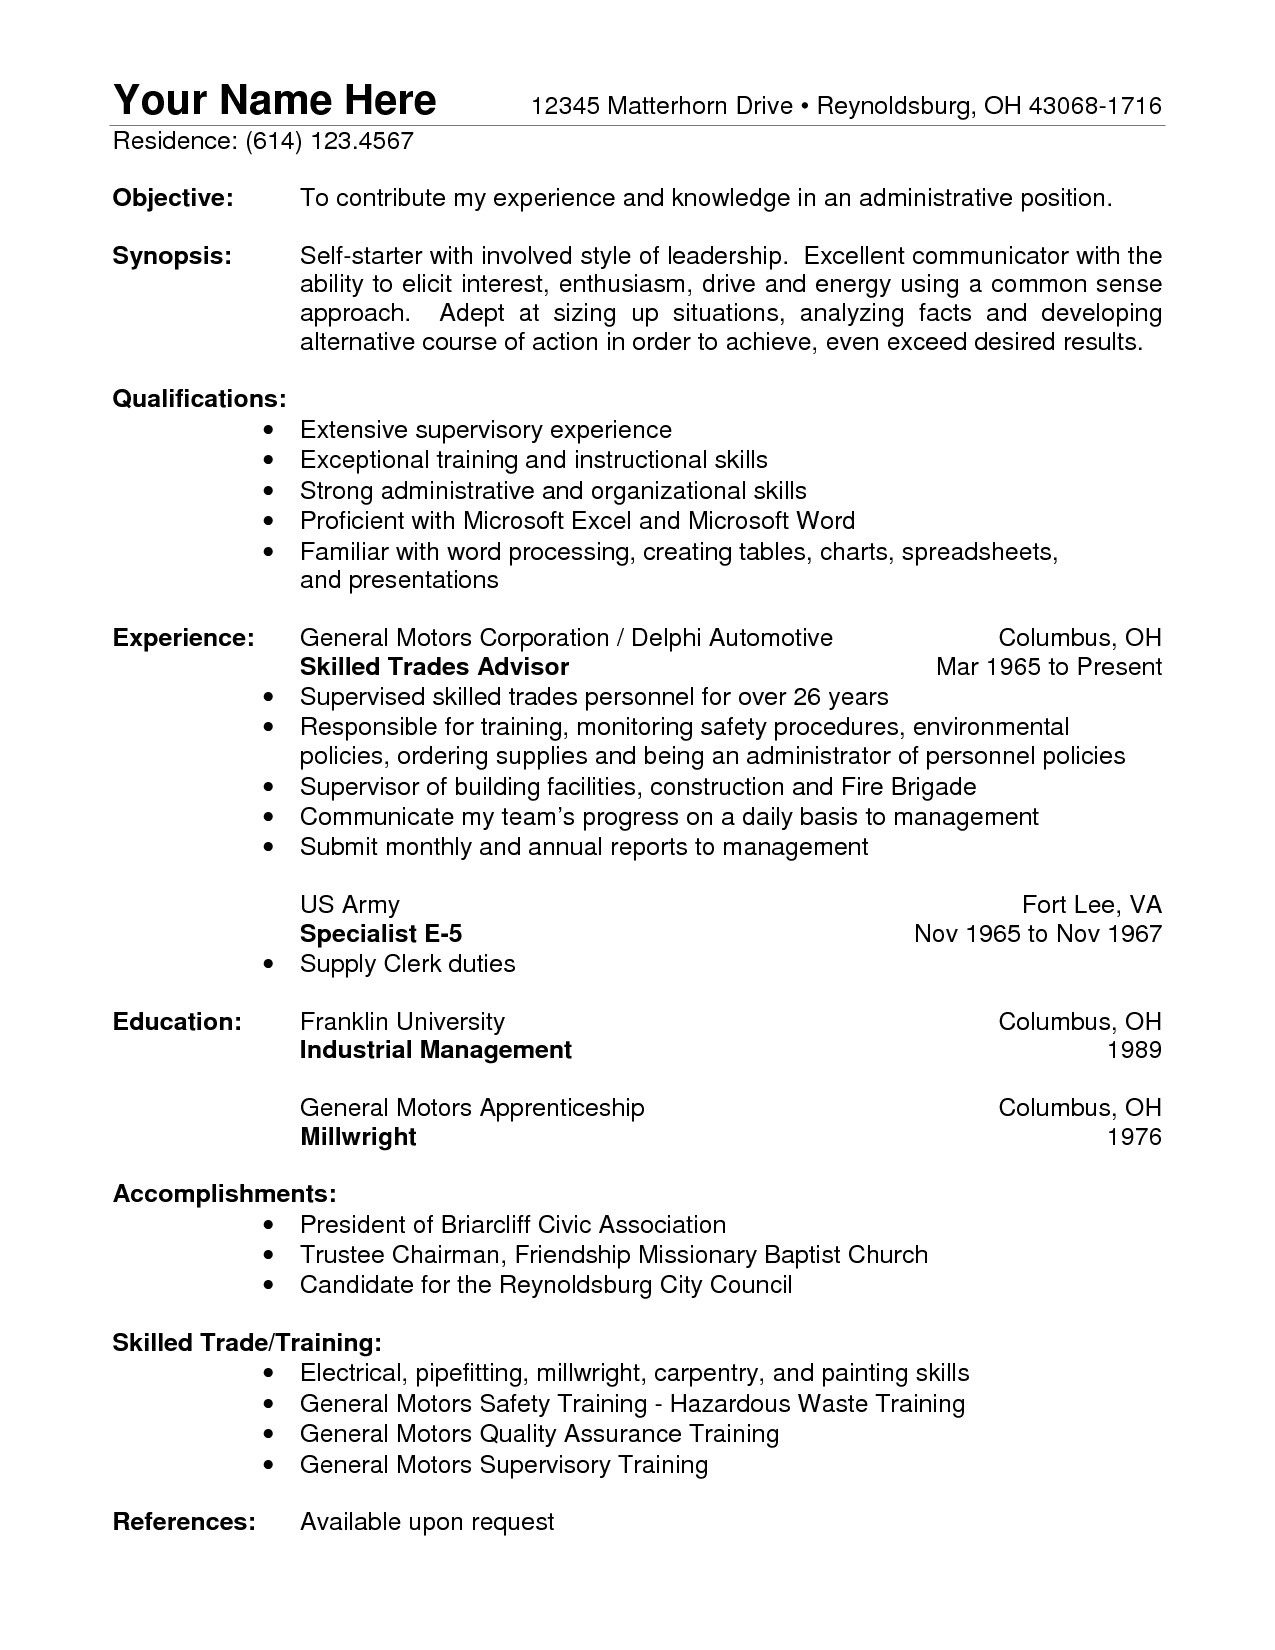 2016 Warehouse Job Description SampleBusinessResume Com  Monster Resume Examples